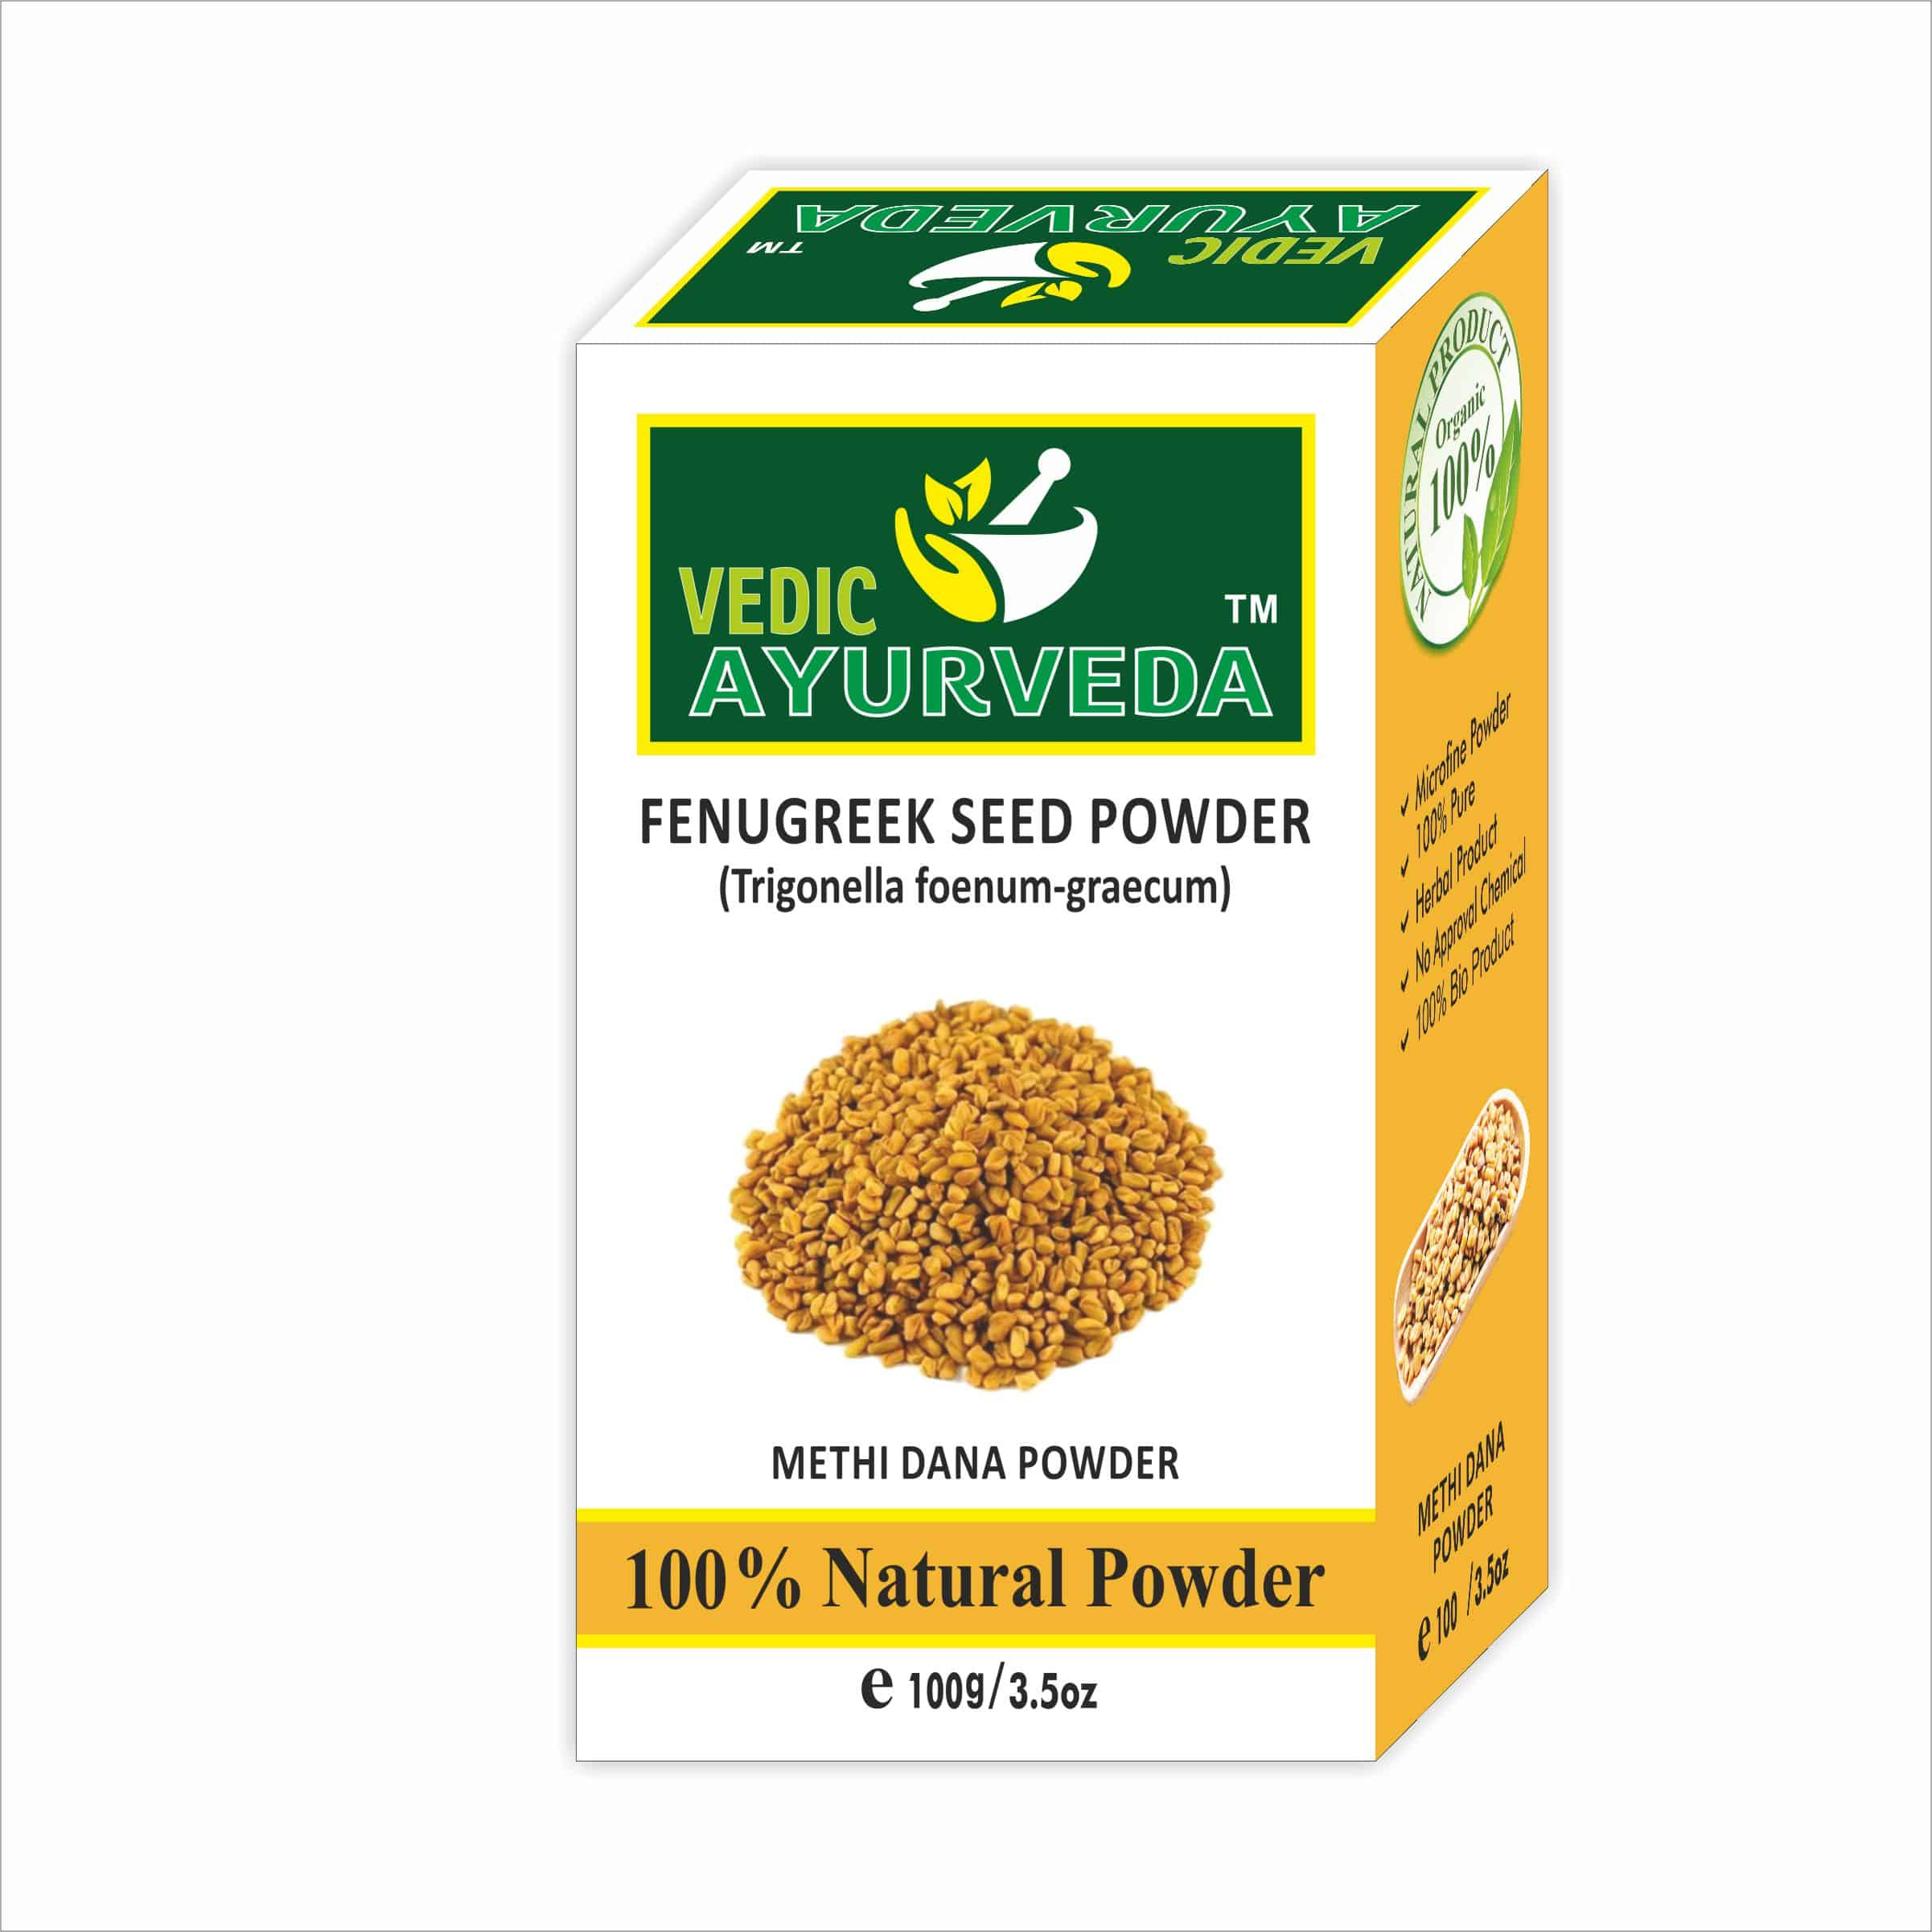 Fengrueek seed powder